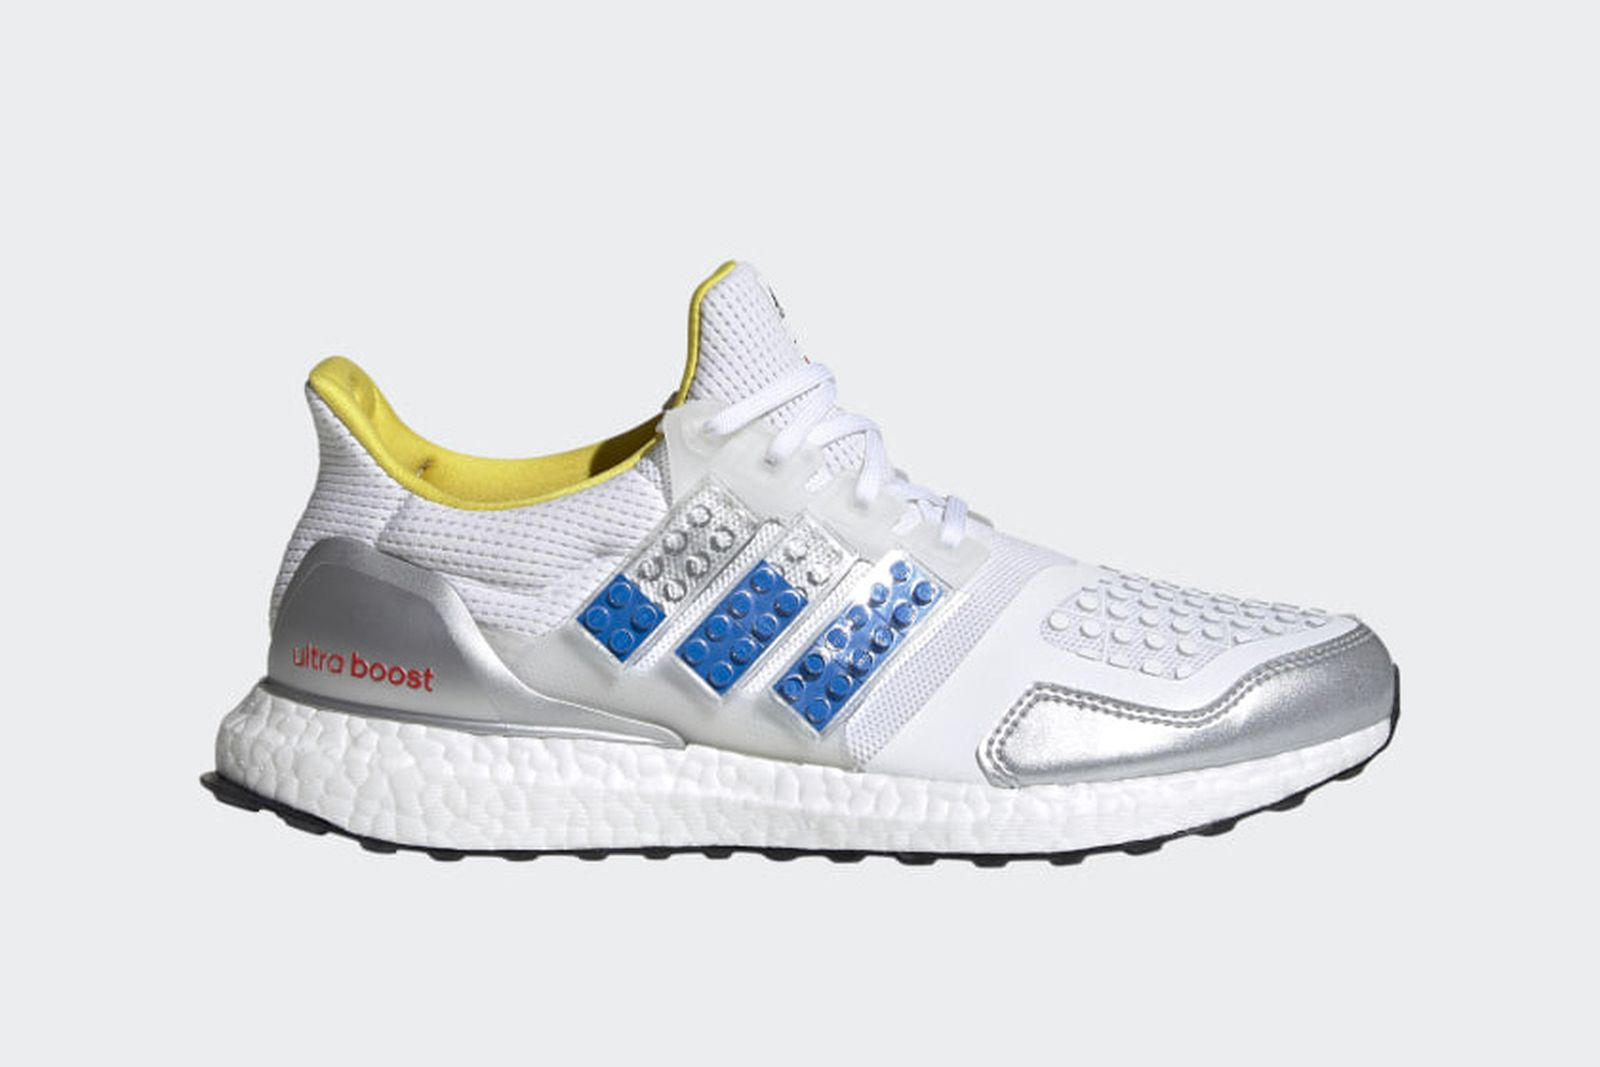 lego-adidas-ultraboost-dna-release-date-price-03